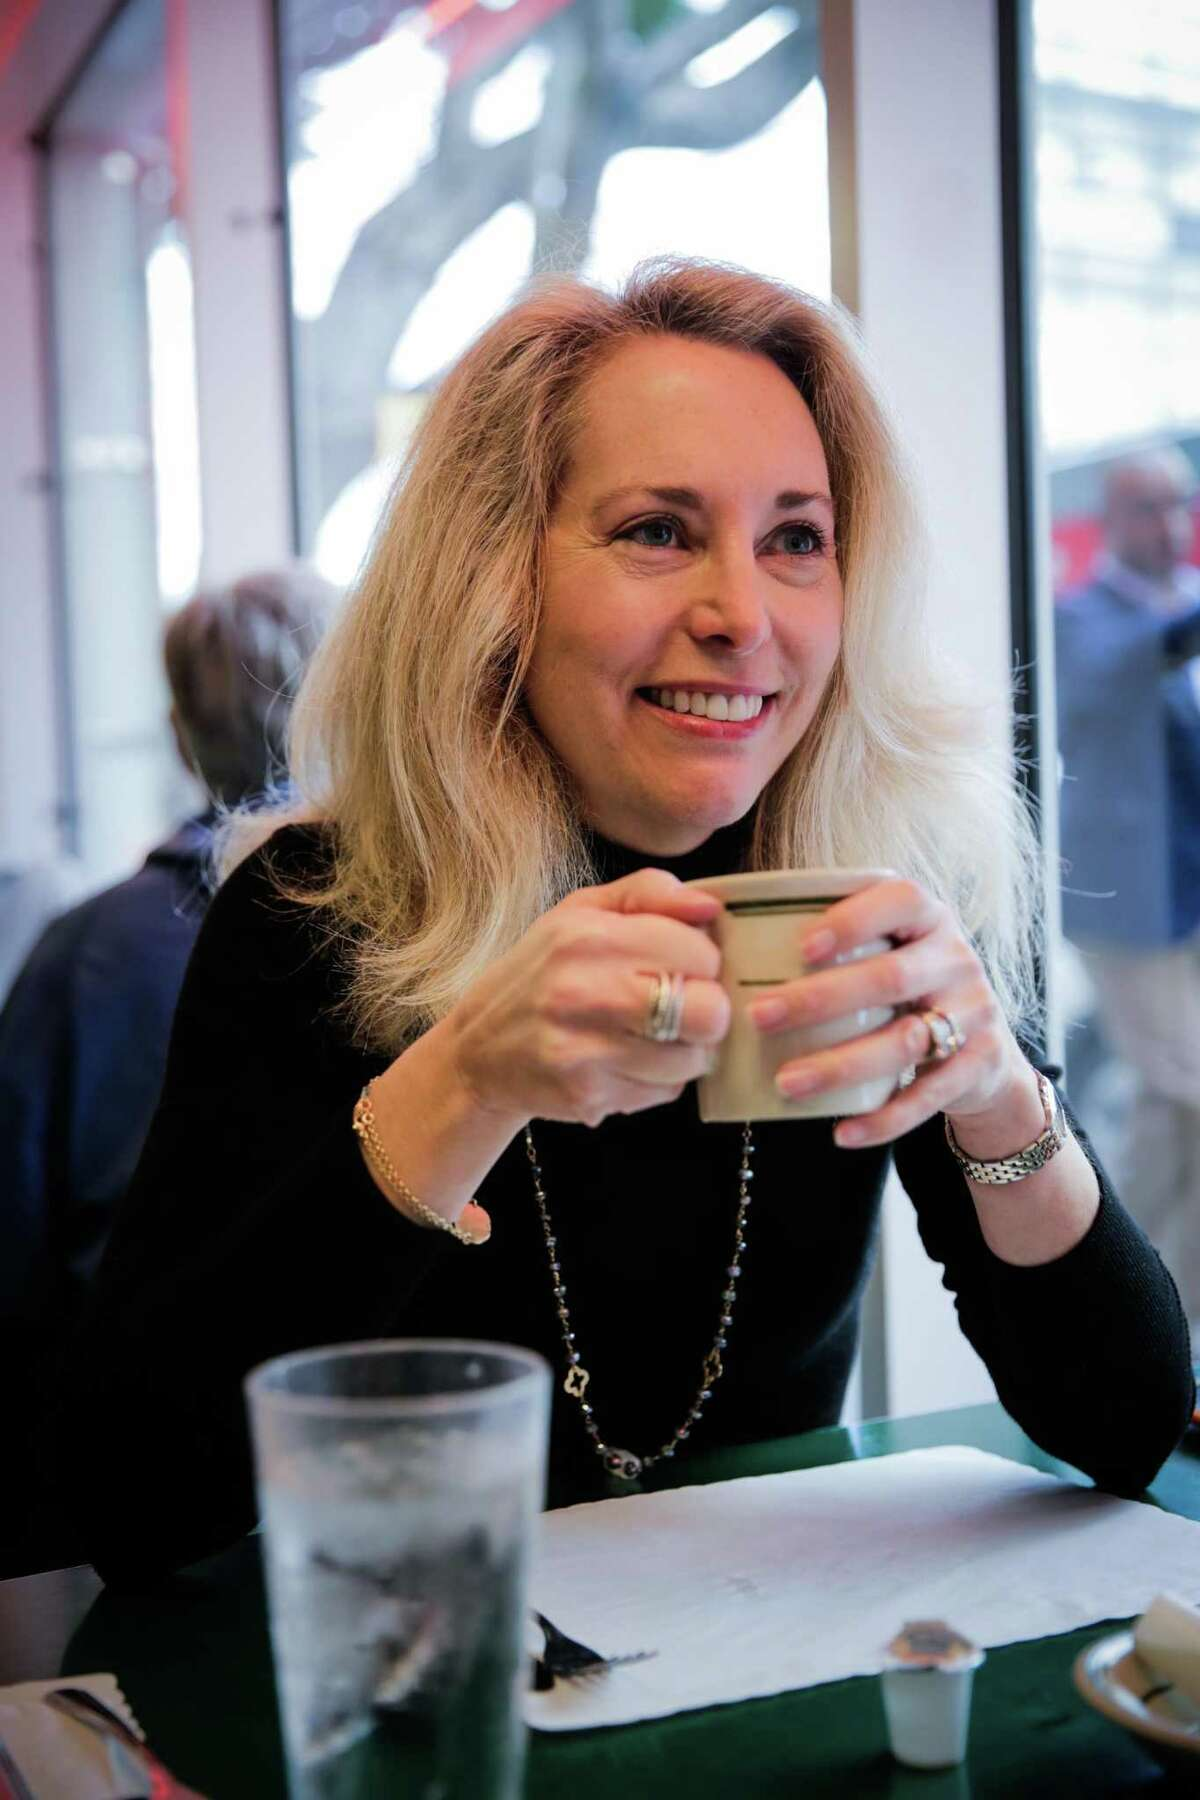 Ex-CIA operative Valerie Plame, shown in San Francisco in 2017, will appear at Texas A&M University on April 8.